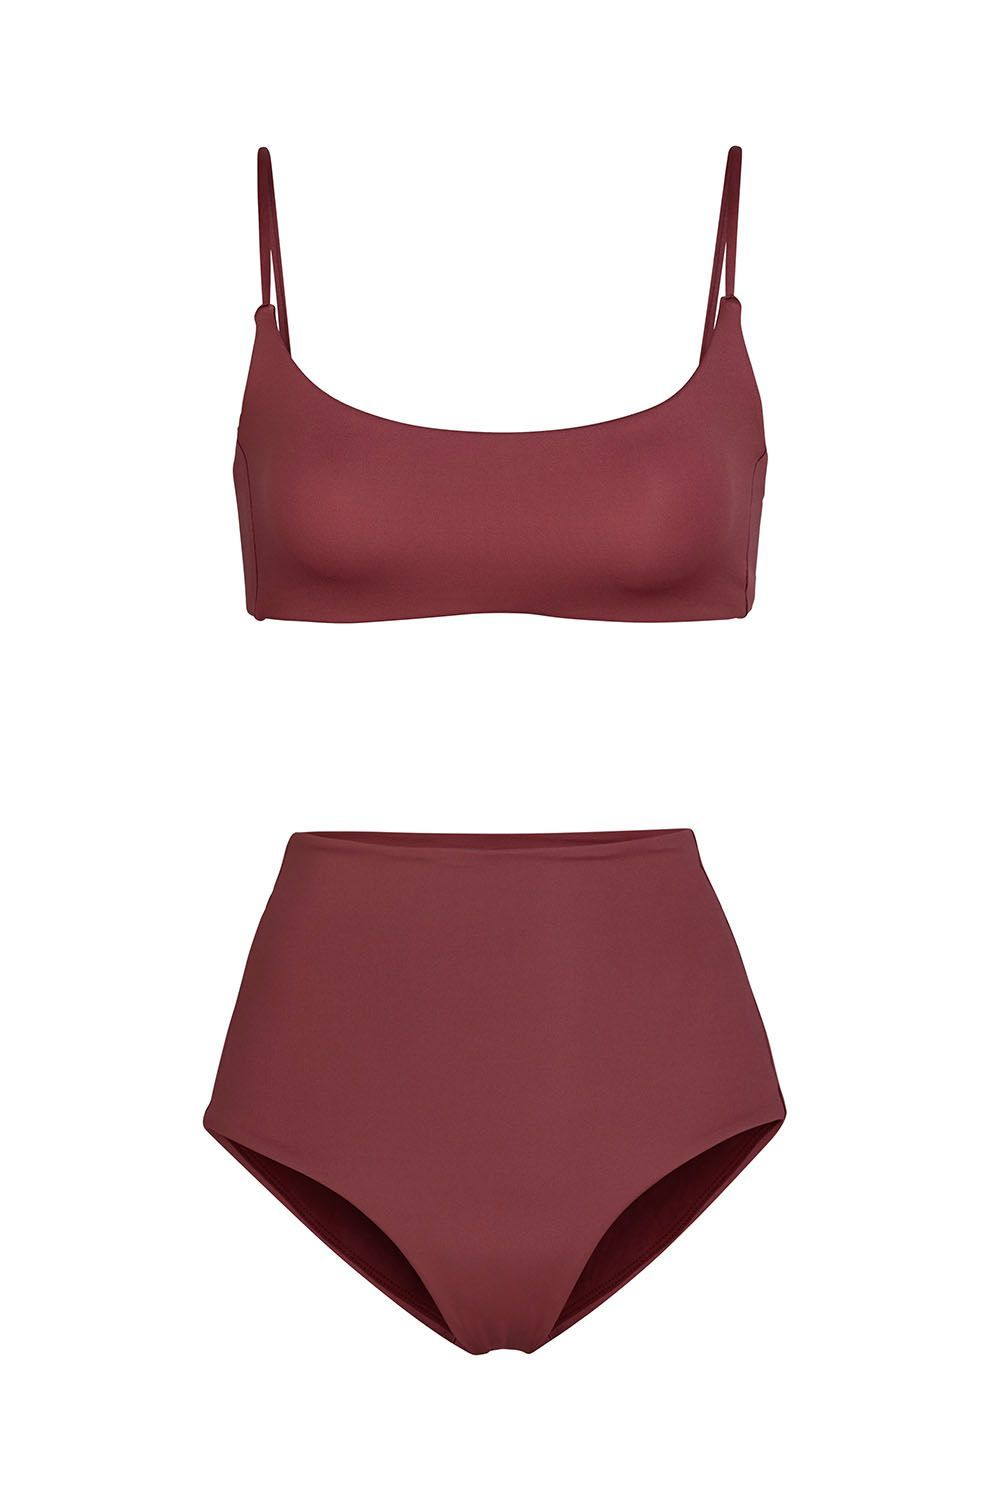 Best for Being Active In Maroon Bikini Left on Friday leftonfriday.com $85.00 SHOP THE TOP SHOP THE BOTTOM Left on Friday swimsuits are silky smooth and made with a snag resistant fabric (for all you active ladies). The plain styles are suited for those who are looking for simple, well-made bikinis that become staples season after season.